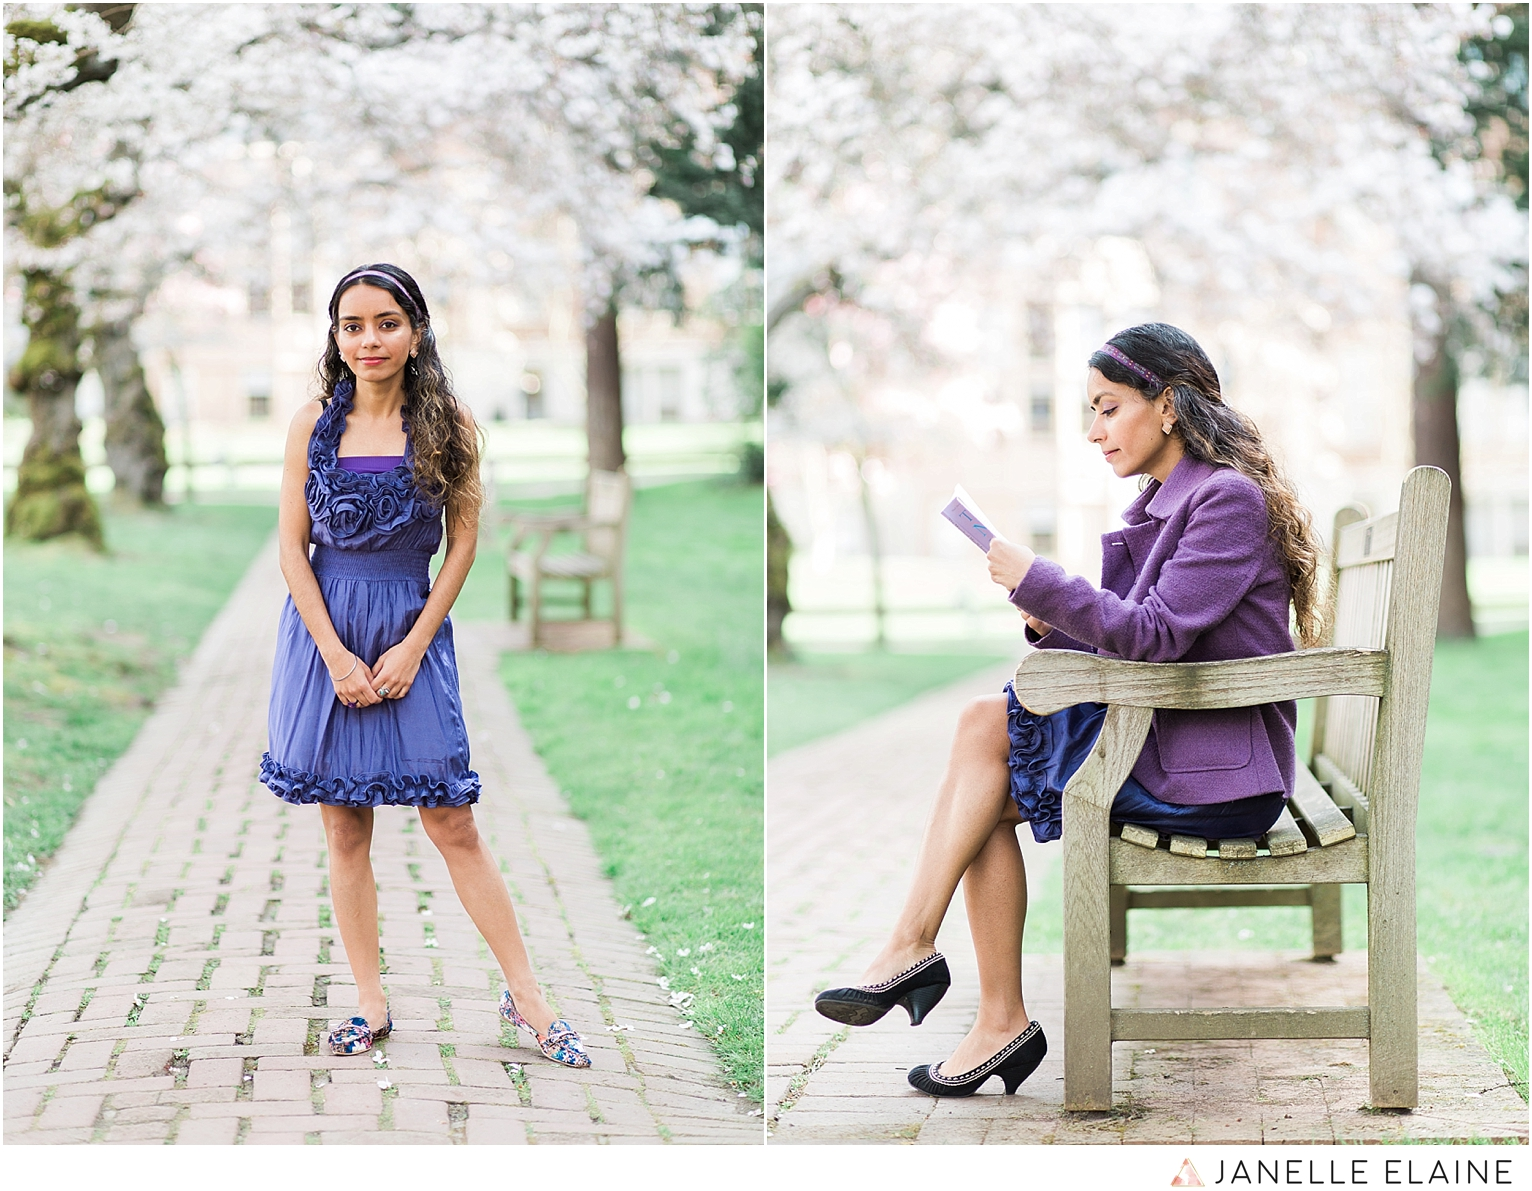 Sufience-Harkirat-spring portrait session-cherry blossoms-uw-seattle photographer janelle elaine-5.jpg